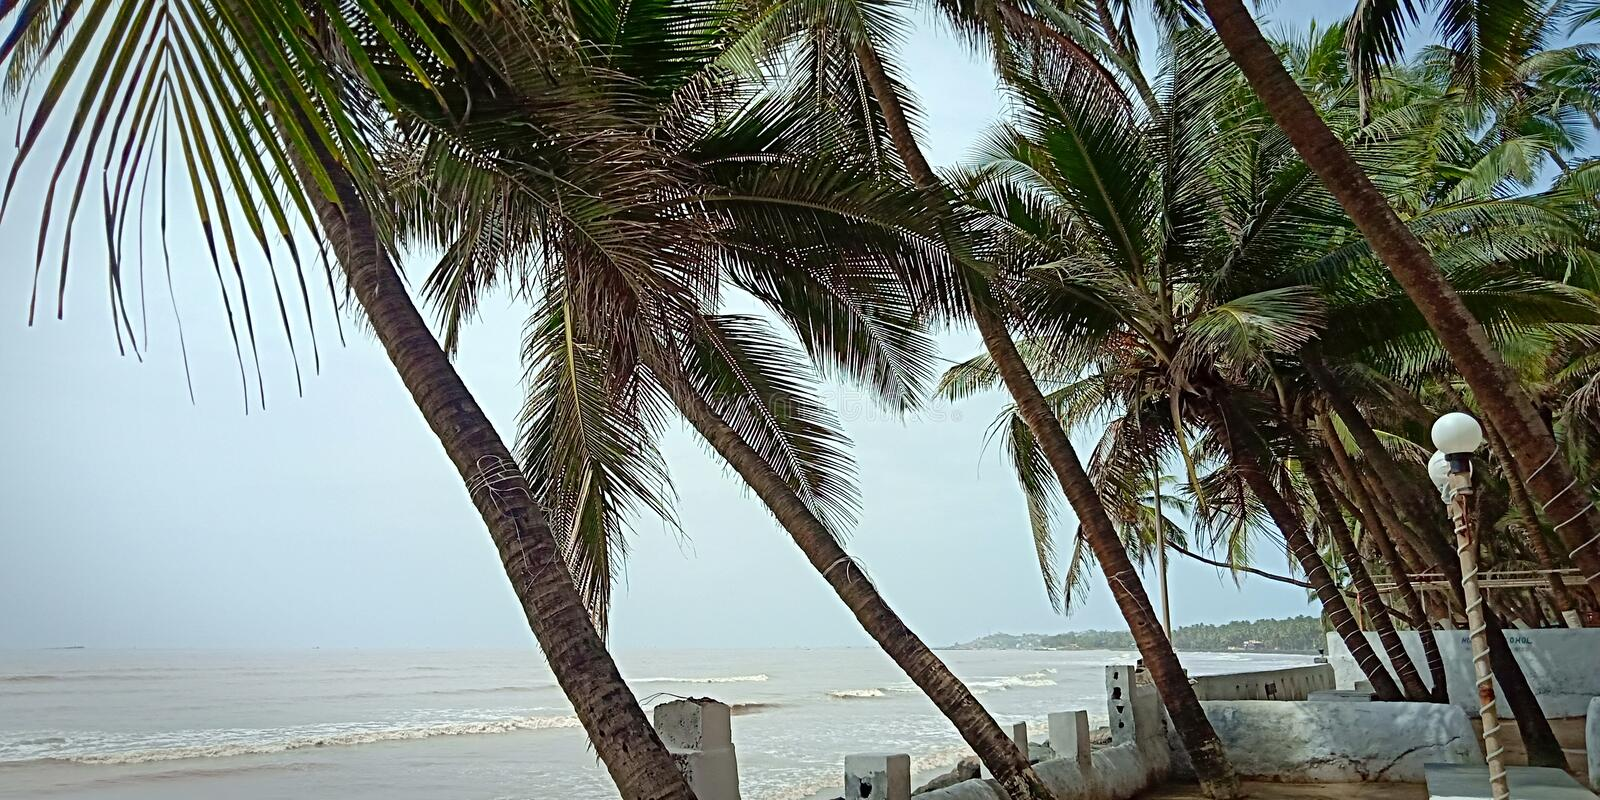 Beach side coconut trees stock photo